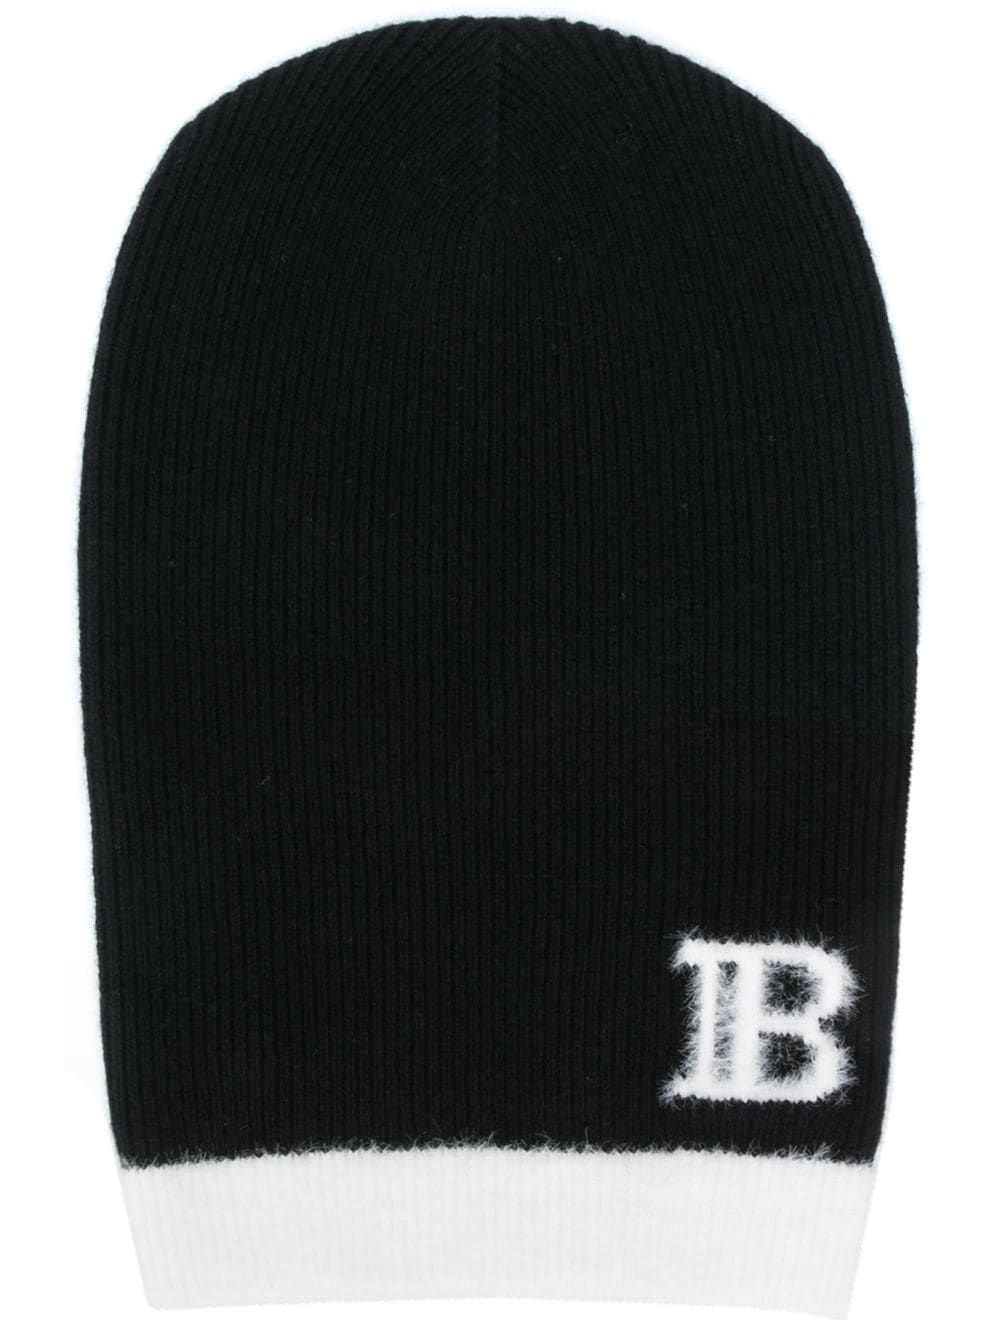 Balmain BALMAIN WOMEN'S BLACK WOOL HAT